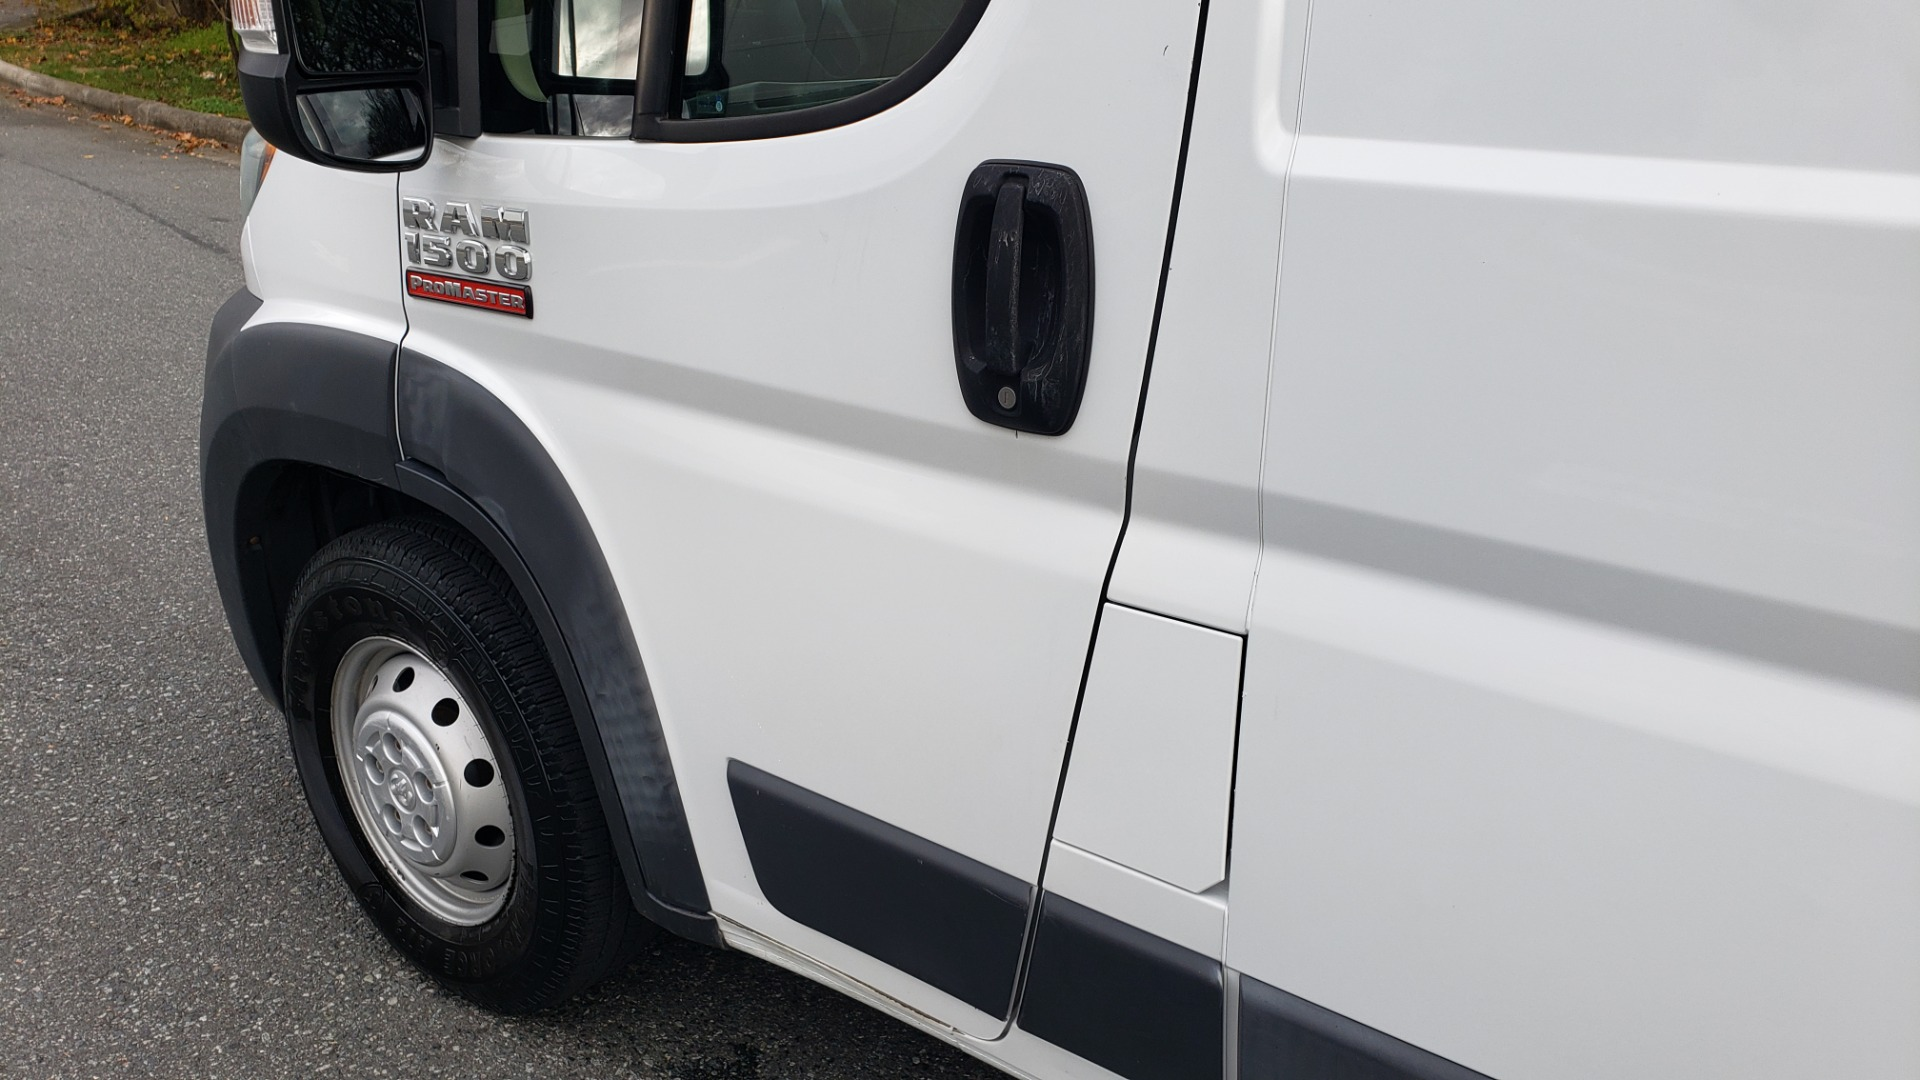 Used 2015 Ram PROMASTER CARGO VAN 136-INCH WB / LOW ROOF / LADDER RACK / INSIDE RACKS for sale $15,995 at Formula Imports in Charlotte NC 28227 7